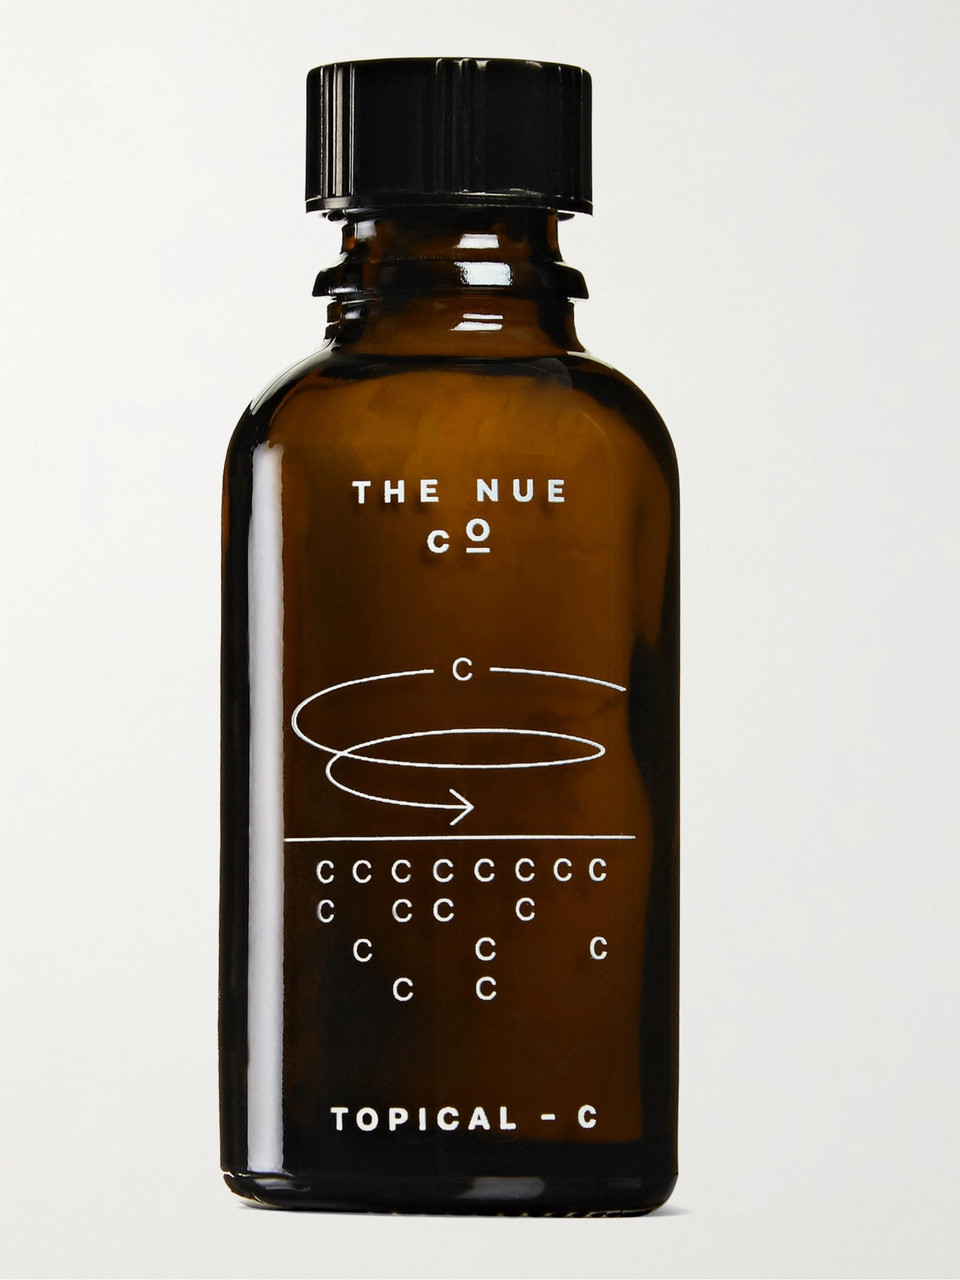 The Nue Co. Topical-C, 15g